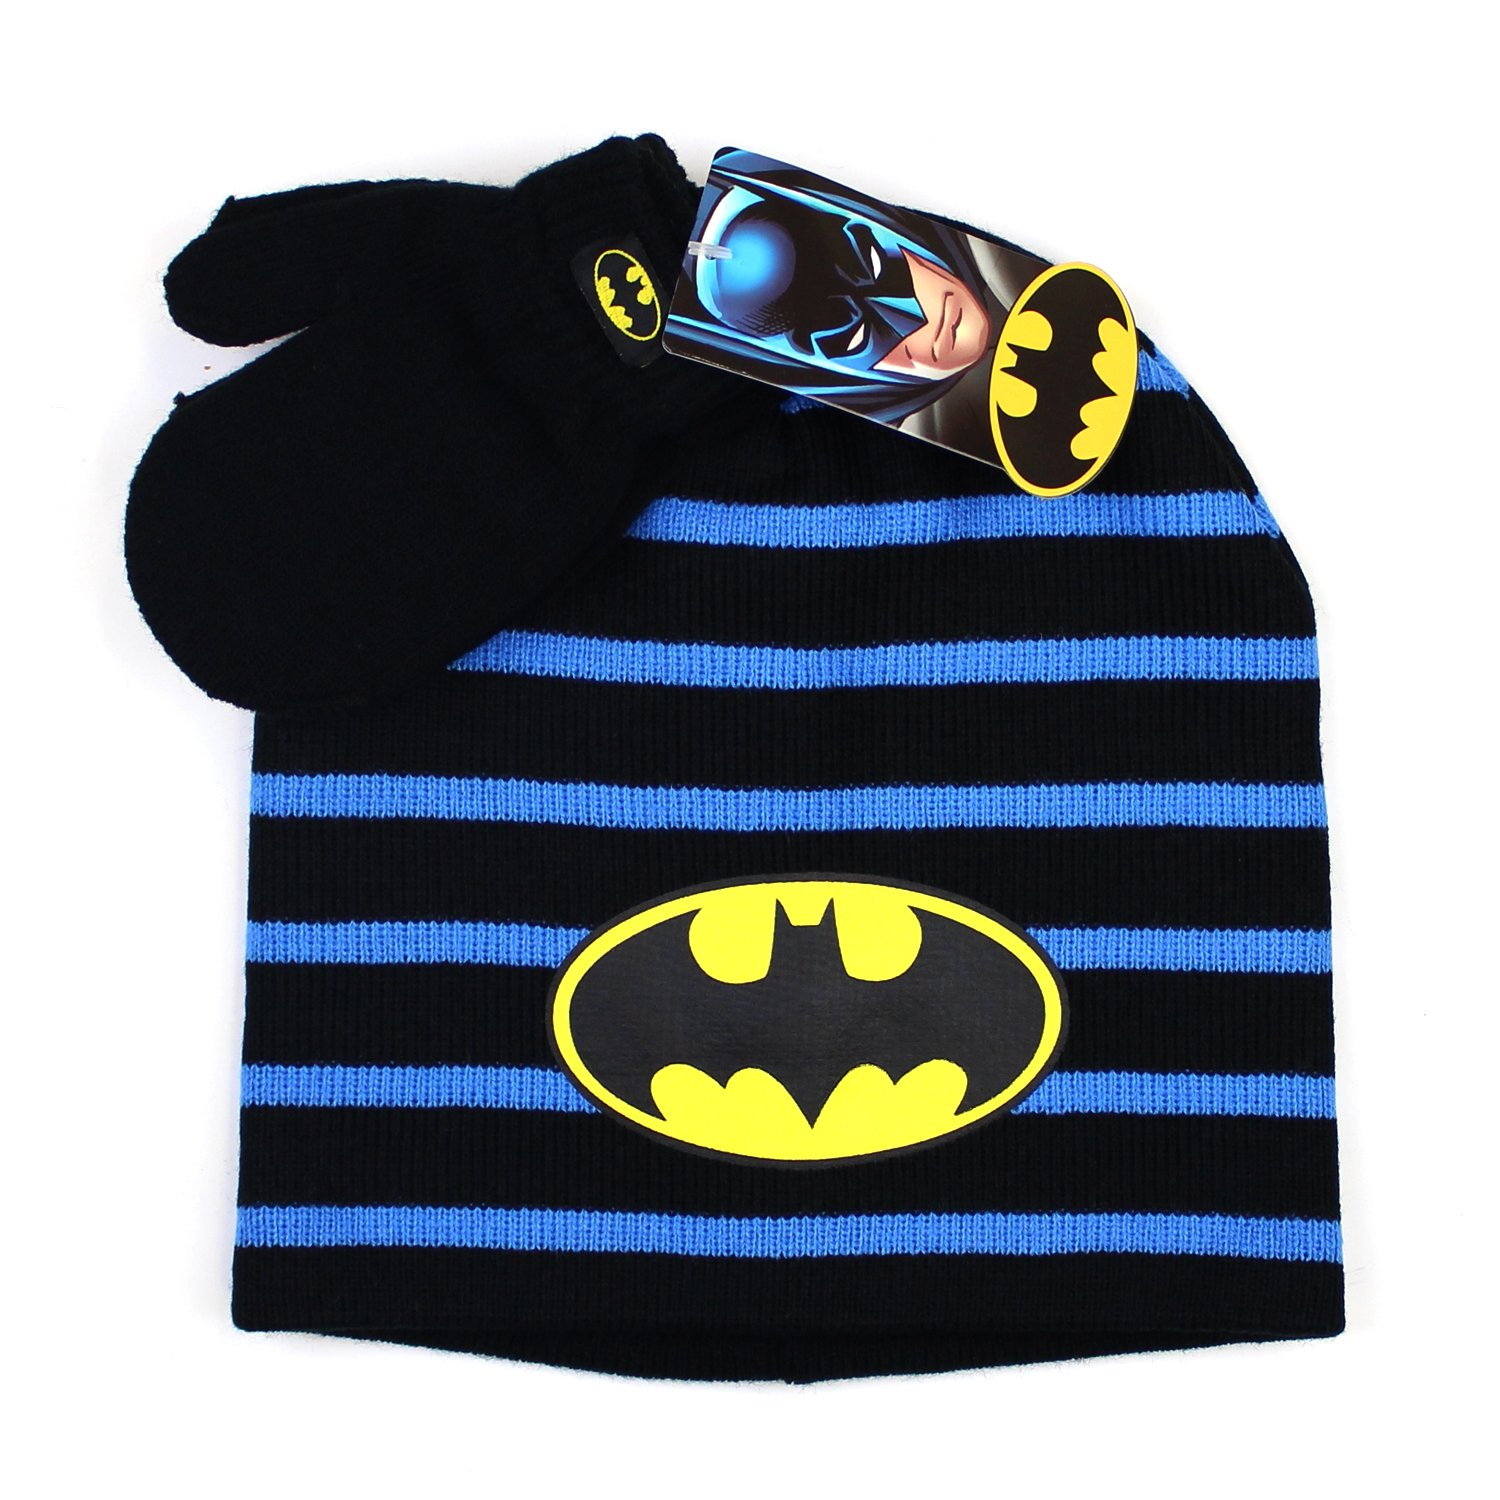 KIDS COMIC SUPERHERO LICENSED BEANIE BOYS TODDLER WINTER HAT & MITTEN SETS